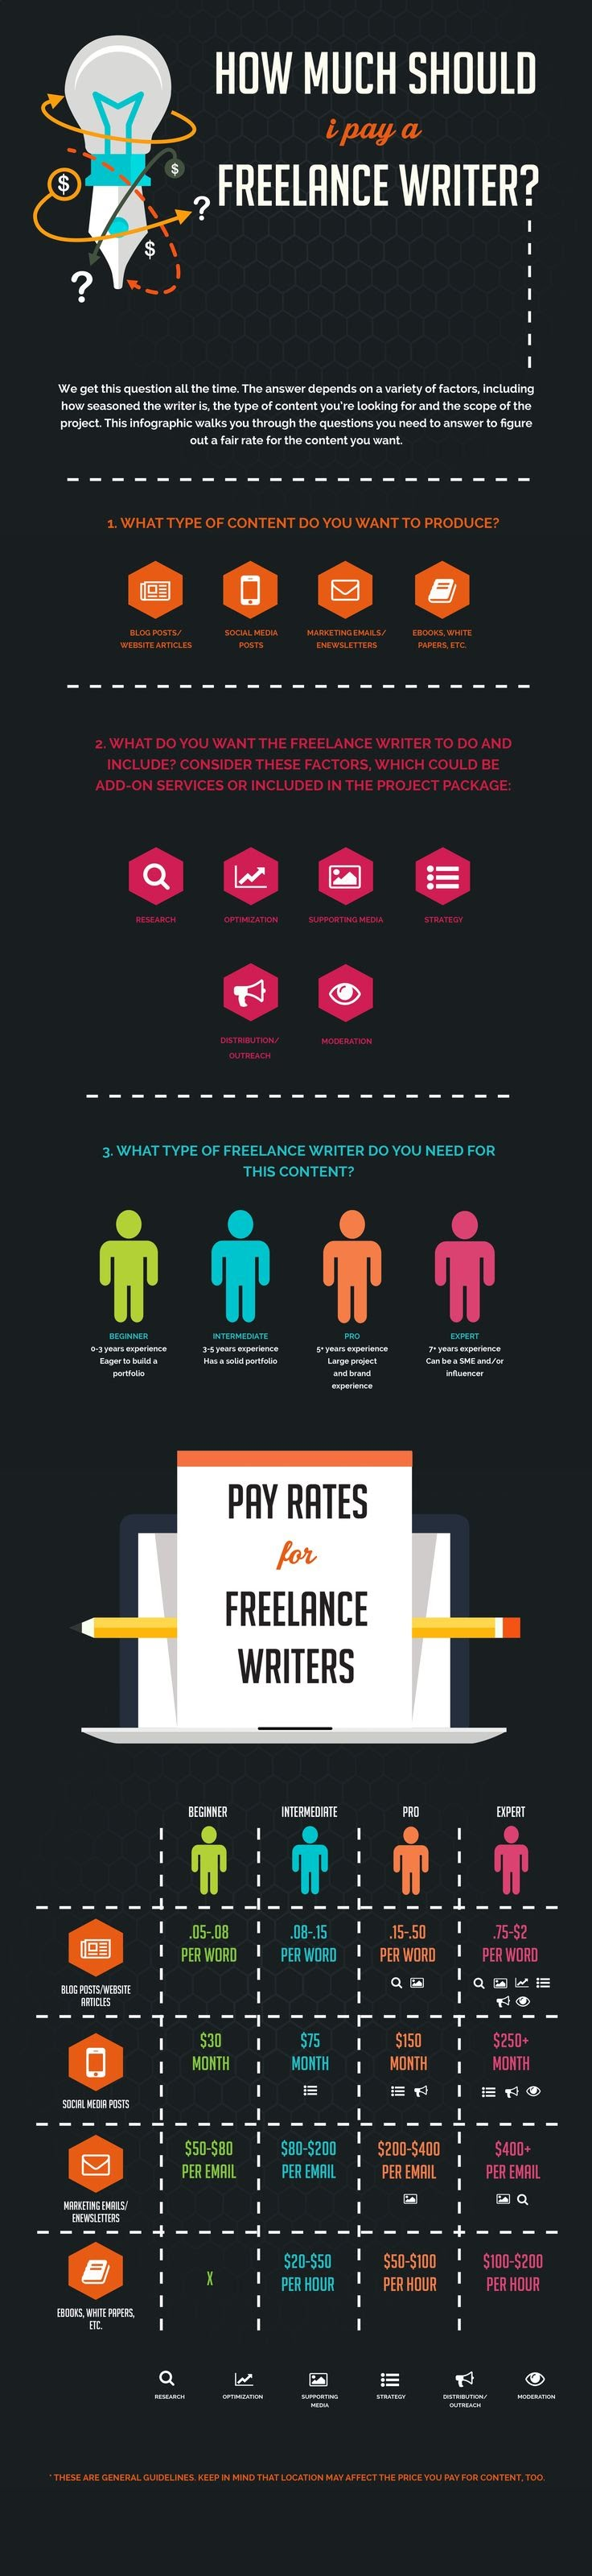 How Much Should I Pay a Freelance Writer? - #Infographic